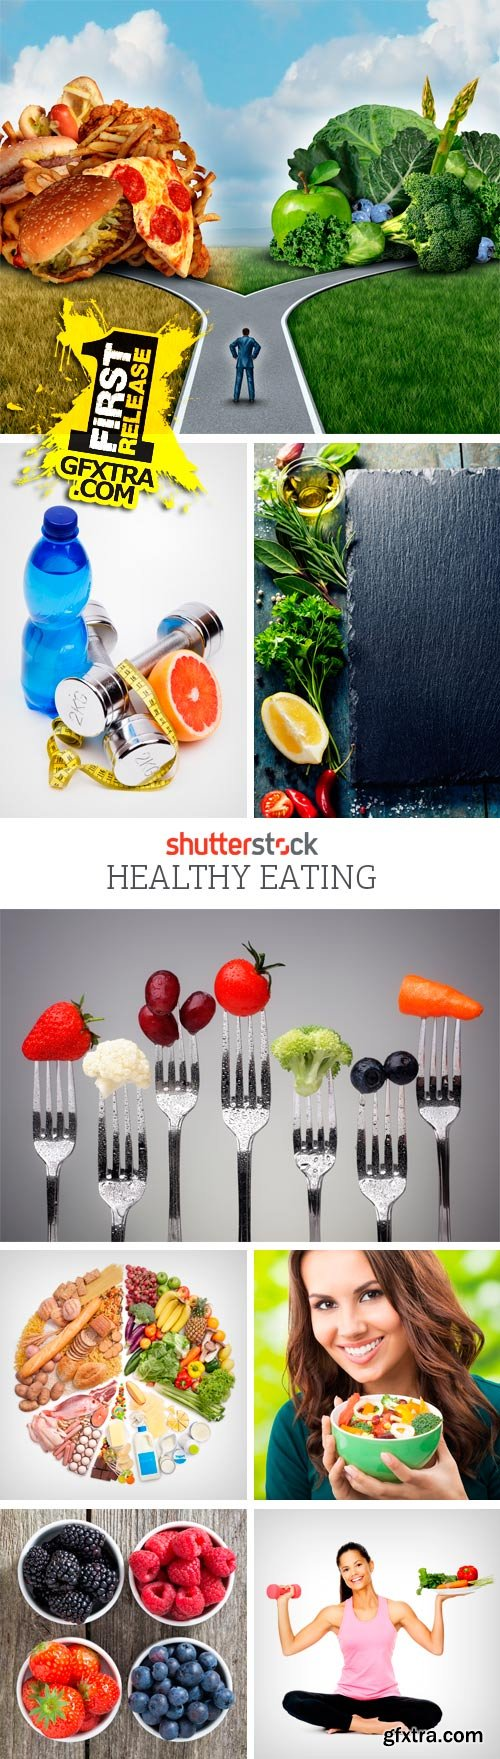 Amazing SS - Healthy Eating, 25xJPGs